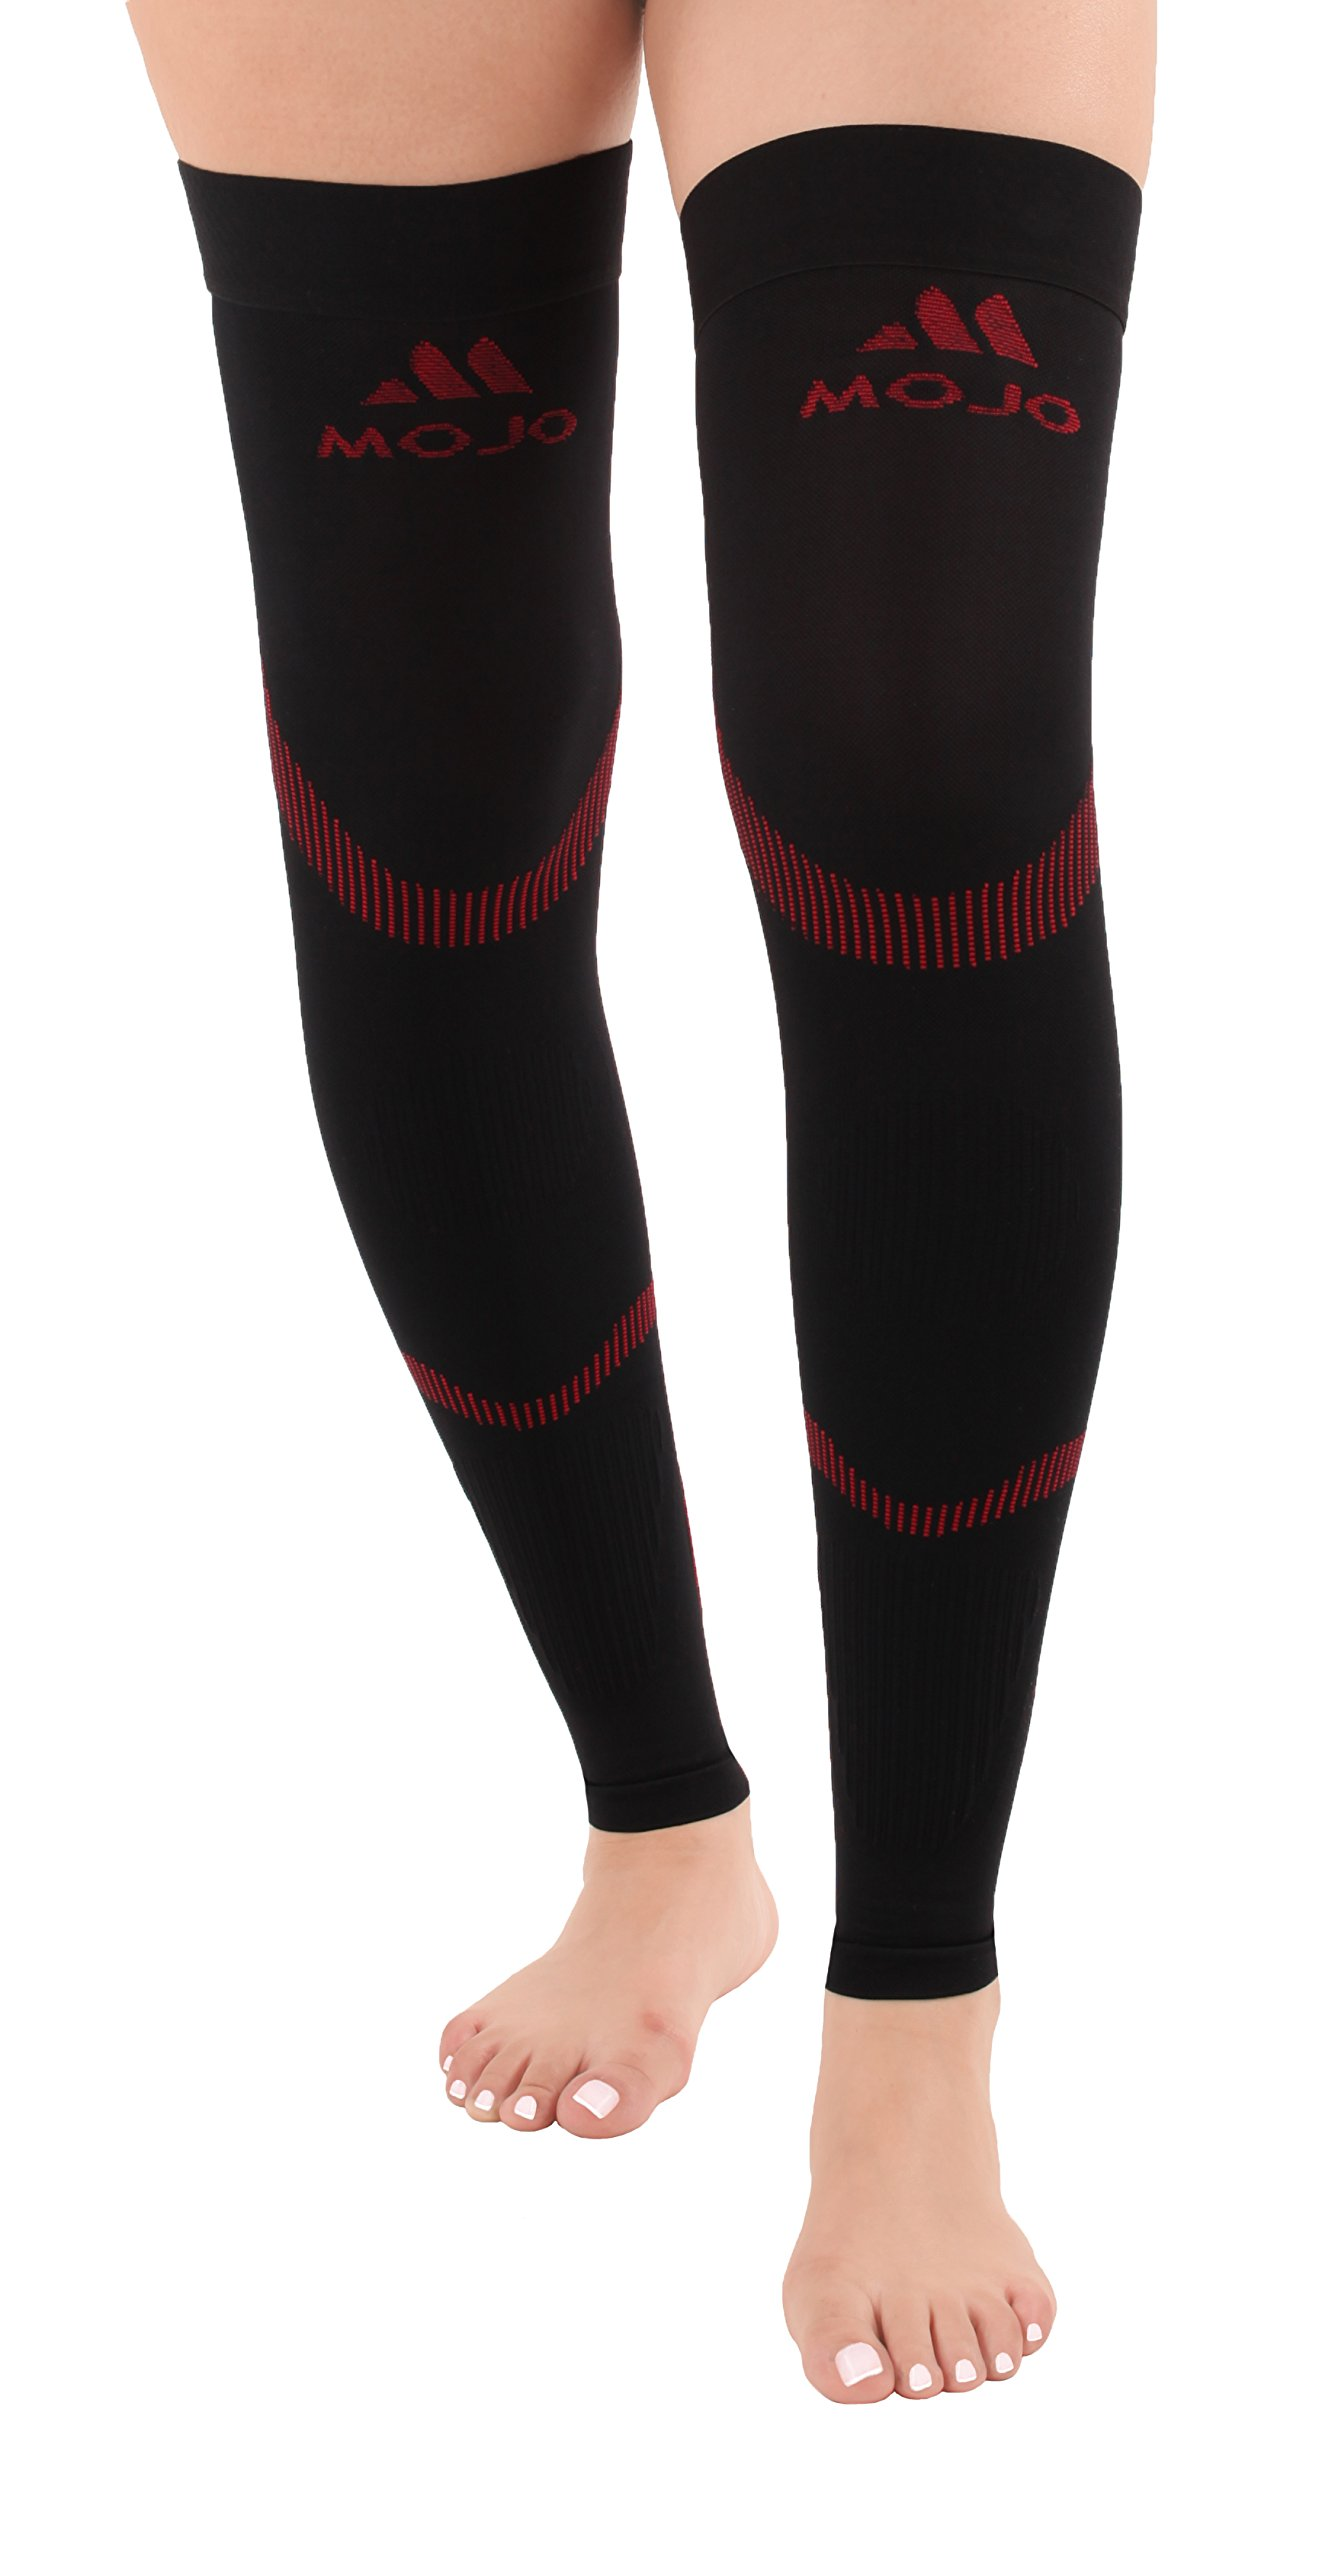 Mojo Compression Stockings - Graduated Compression Thigh Leg Sleeve - 20-30mmhg Medical Support - Thigh Hi Recovery Garment Treats Hamstring, Shin Splints and Quad Injuries, Black/Red Size: Large A609